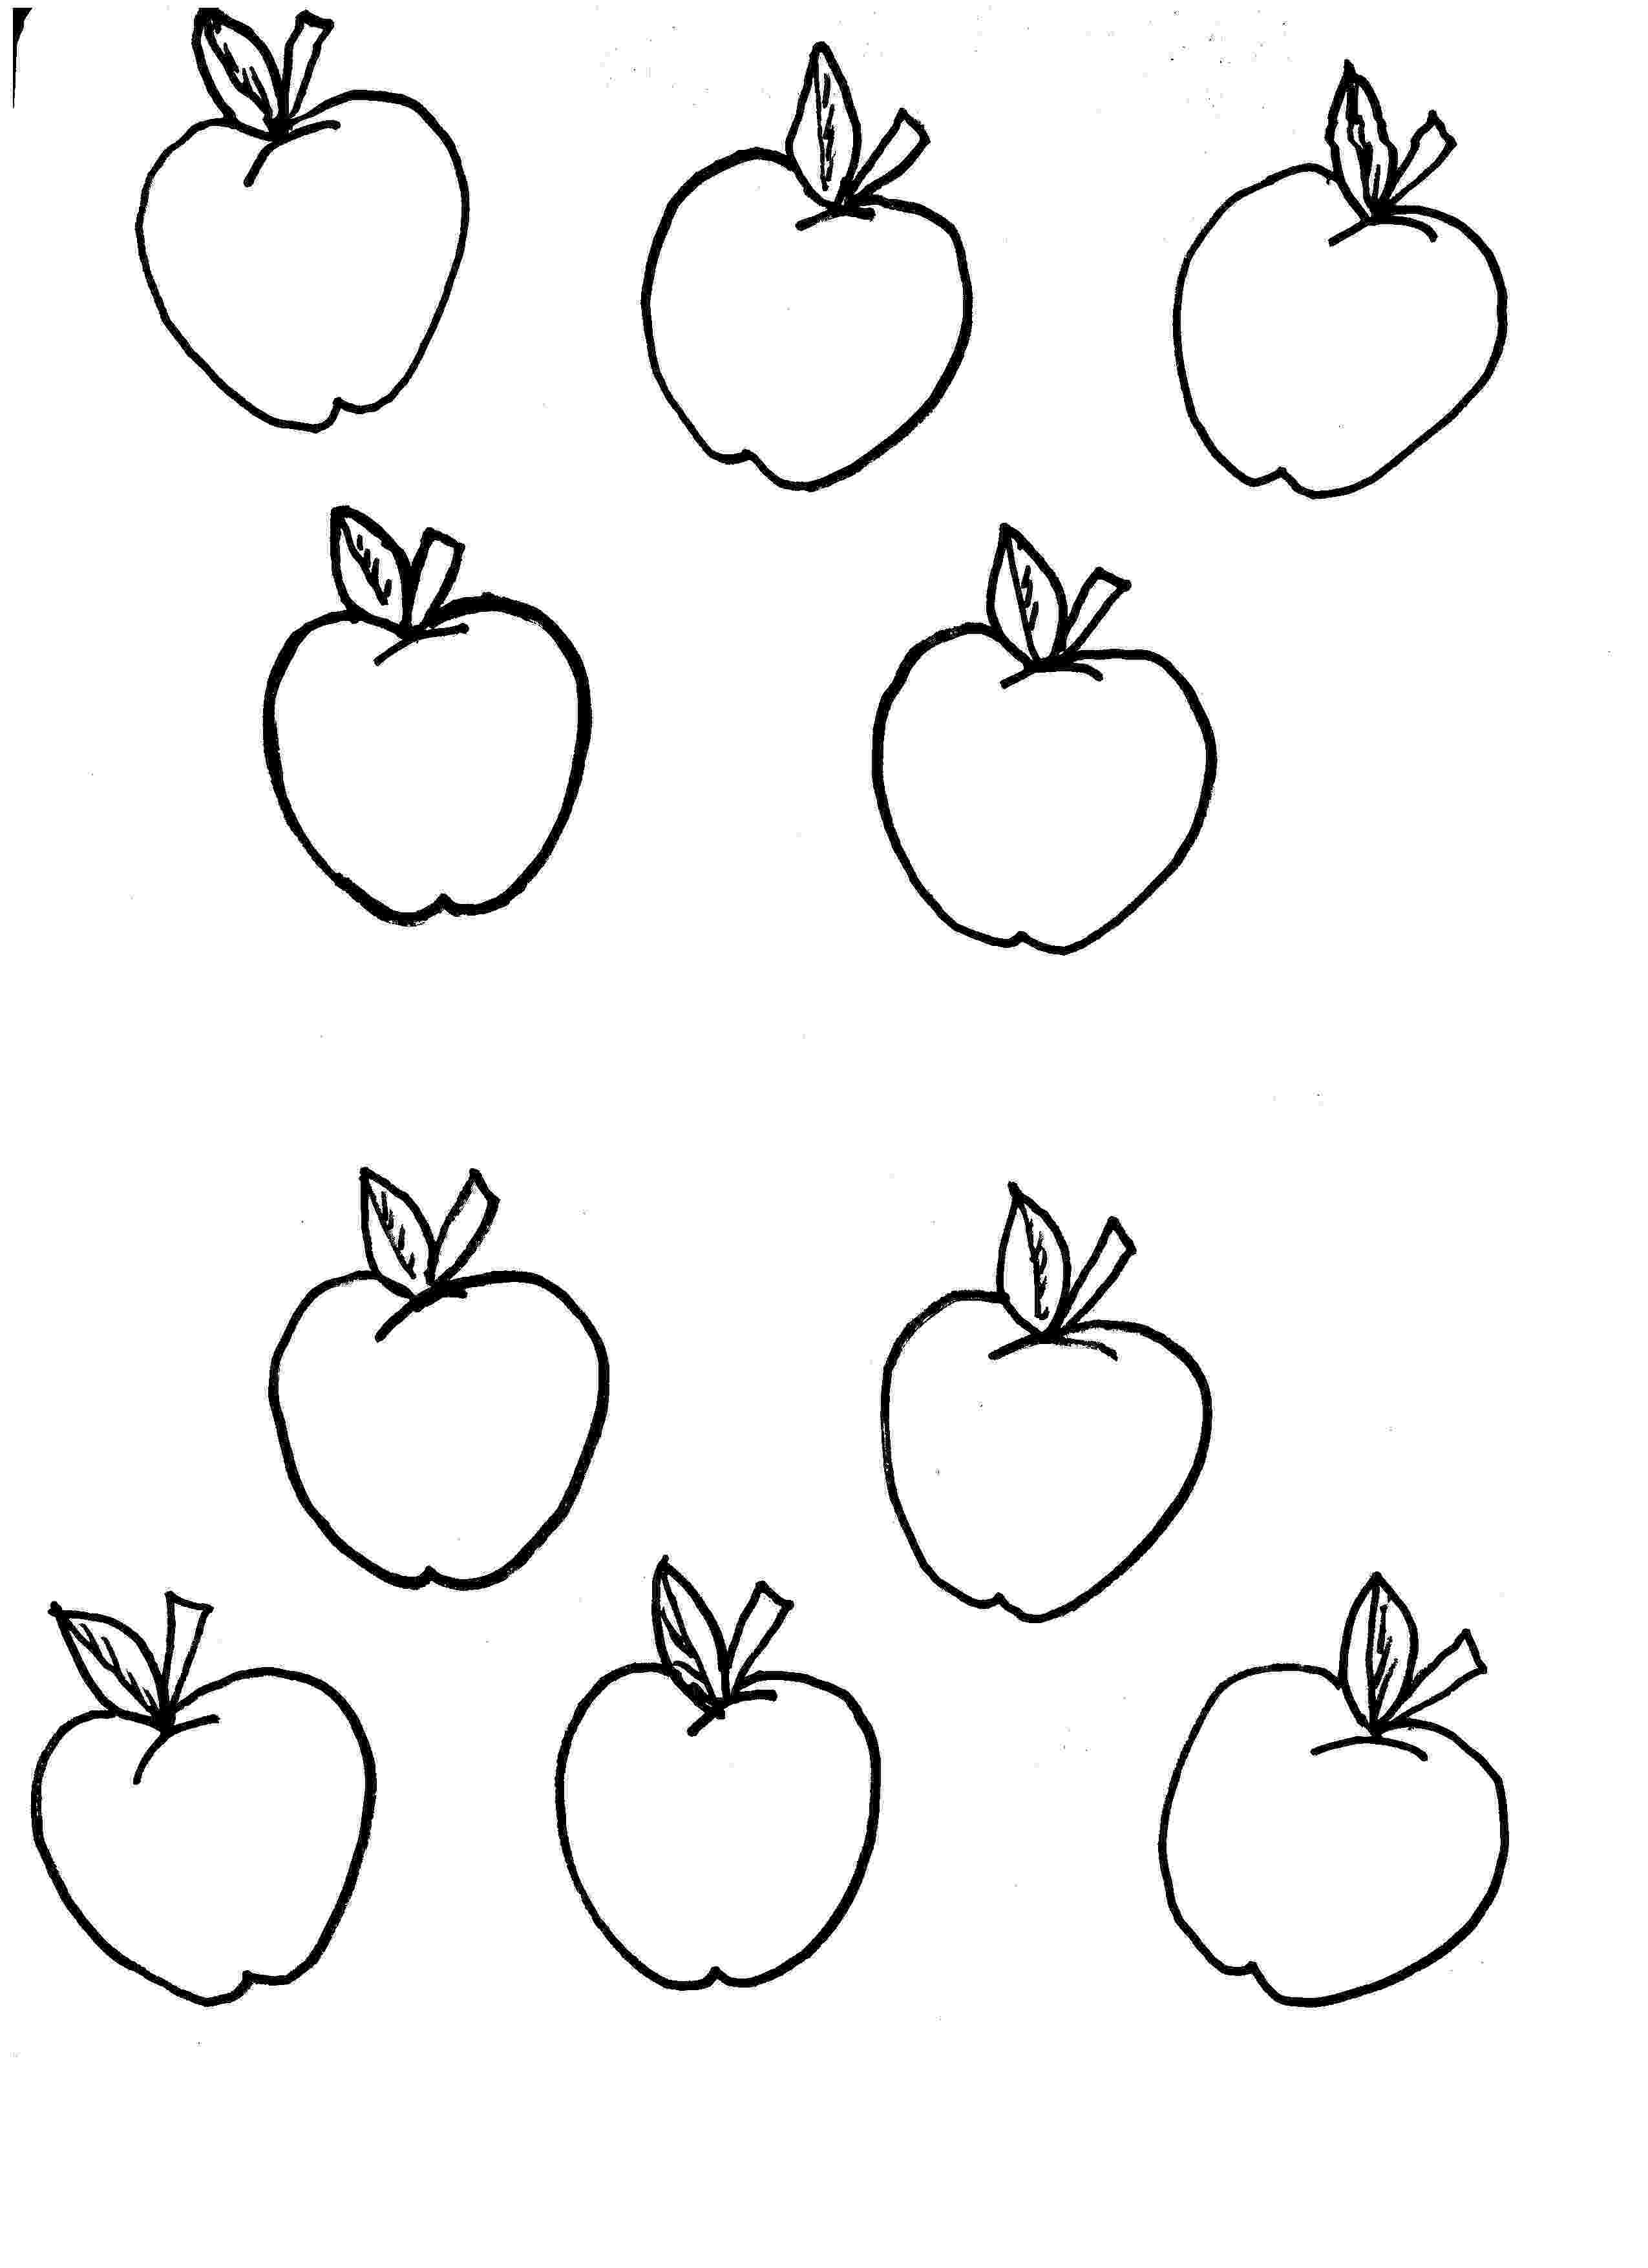 apple picture for kids free printable apple coloring pages for kids cool2bkids picture kids apple for